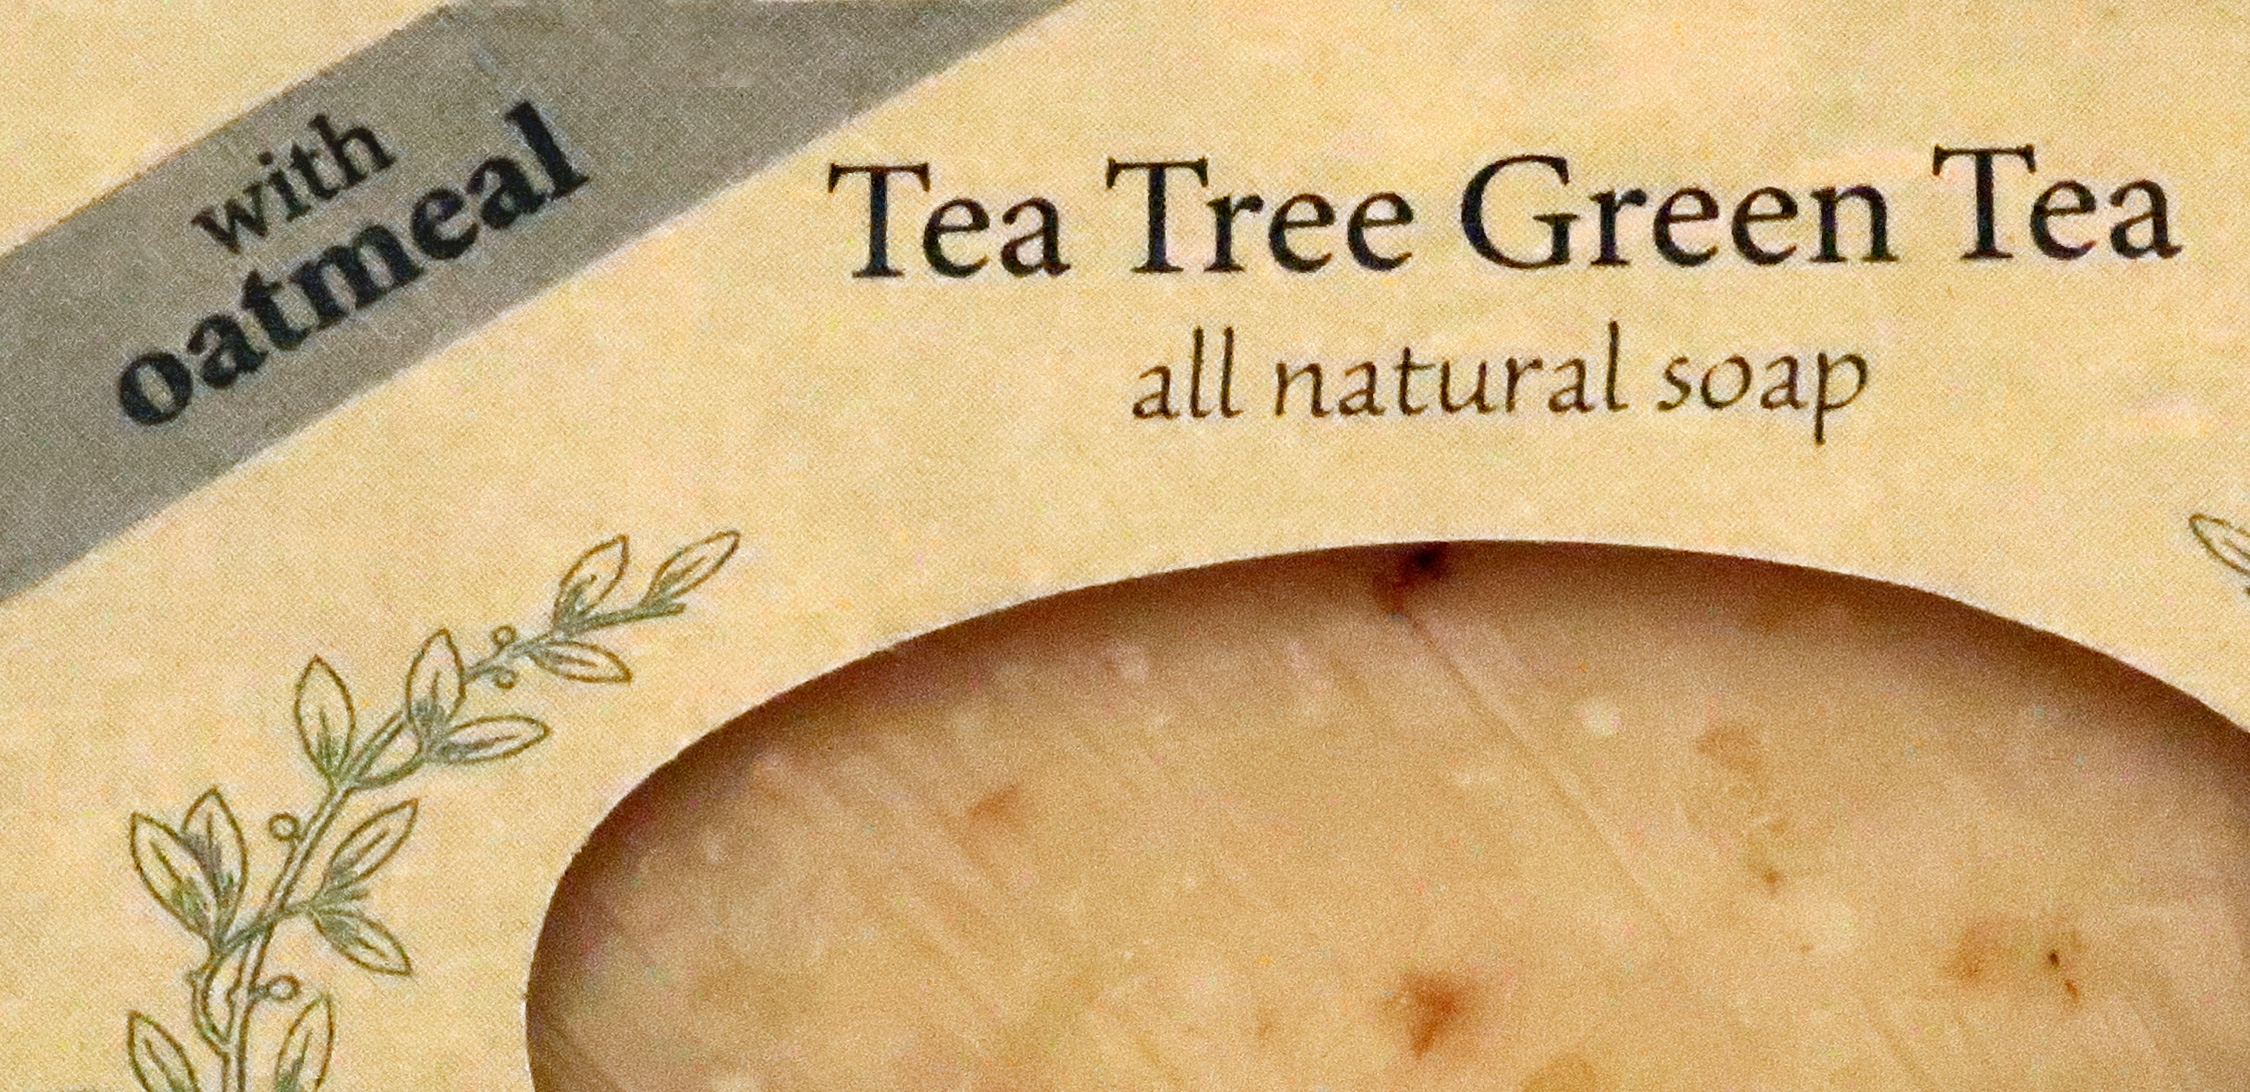 Tea Tree Green Tea with Oatmeal